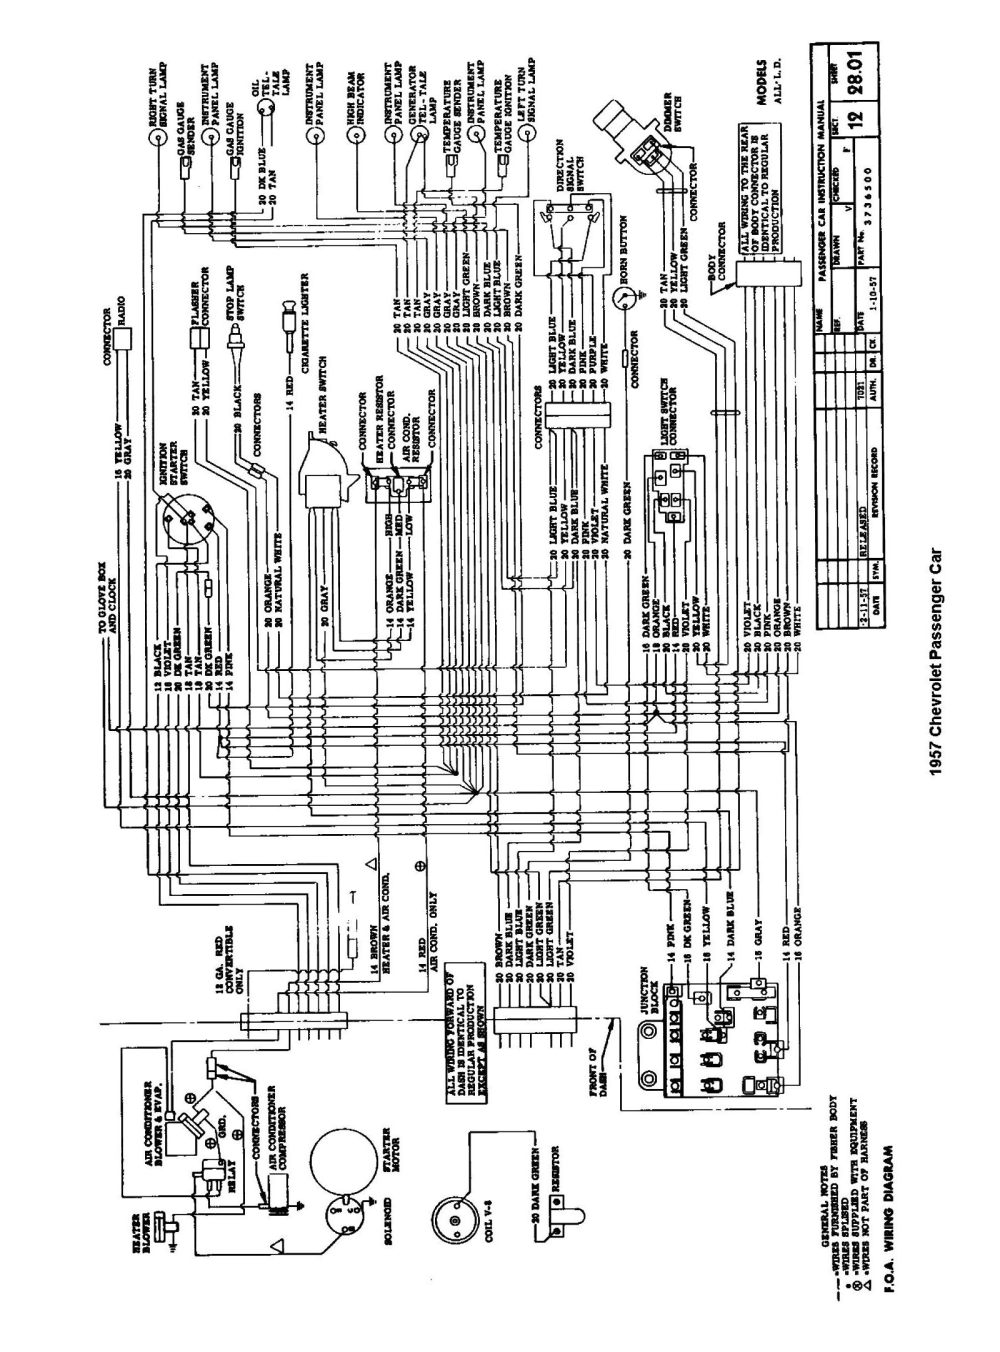 medium resolution of vauxhall nova wiring diagram